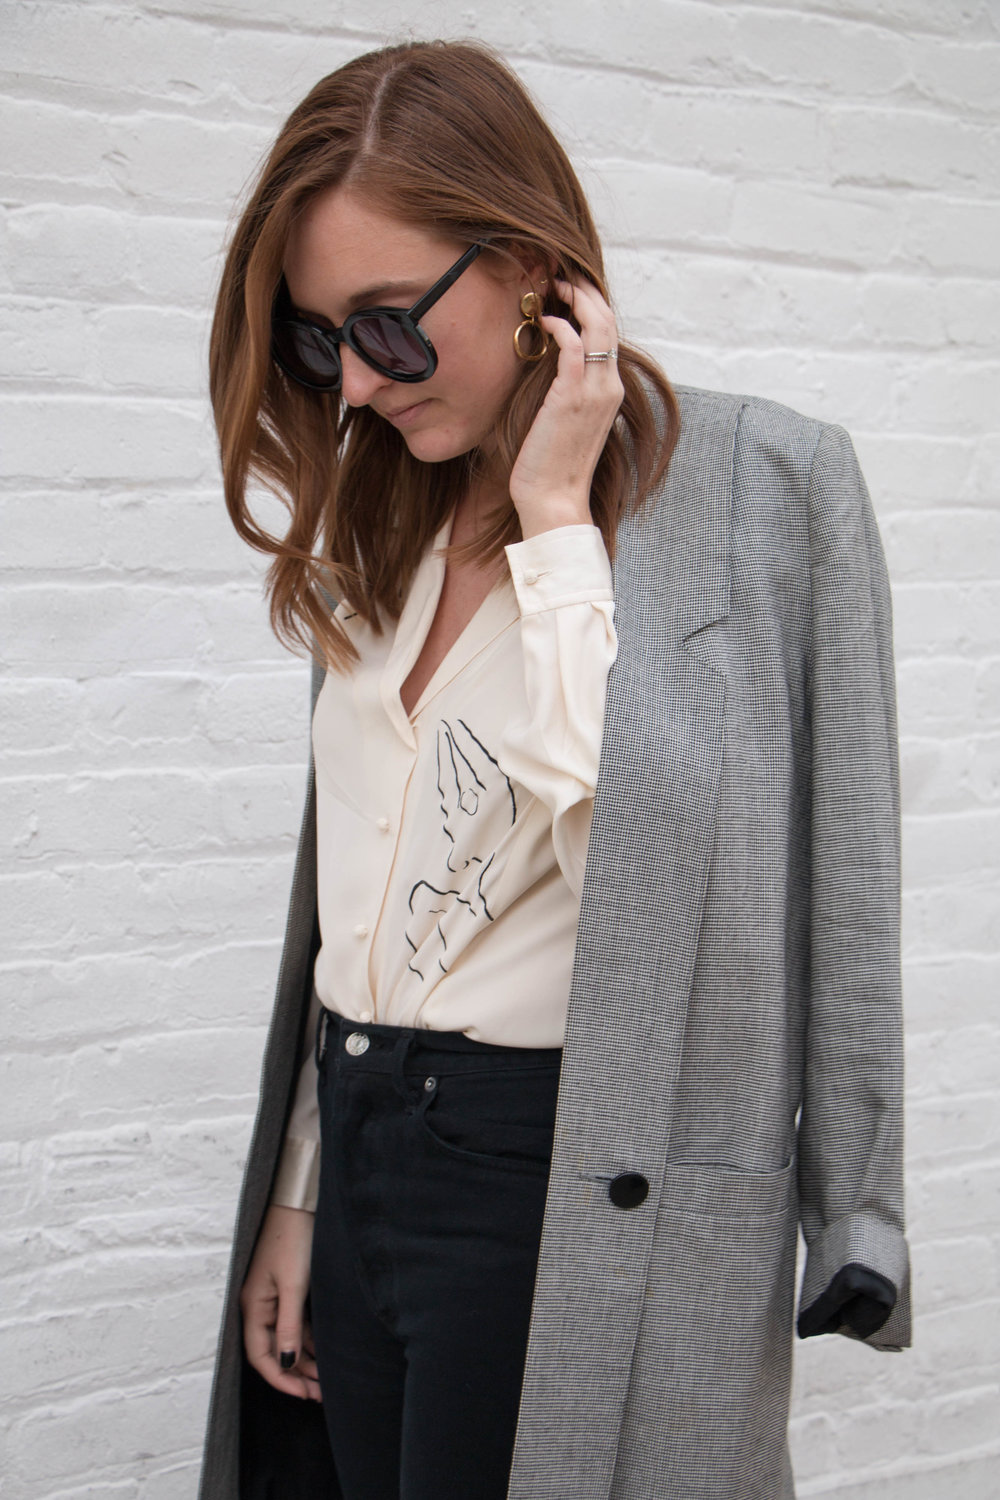 Houndstooth Jacket Outfit By Allison Karaba Of The Thoughtful Closet